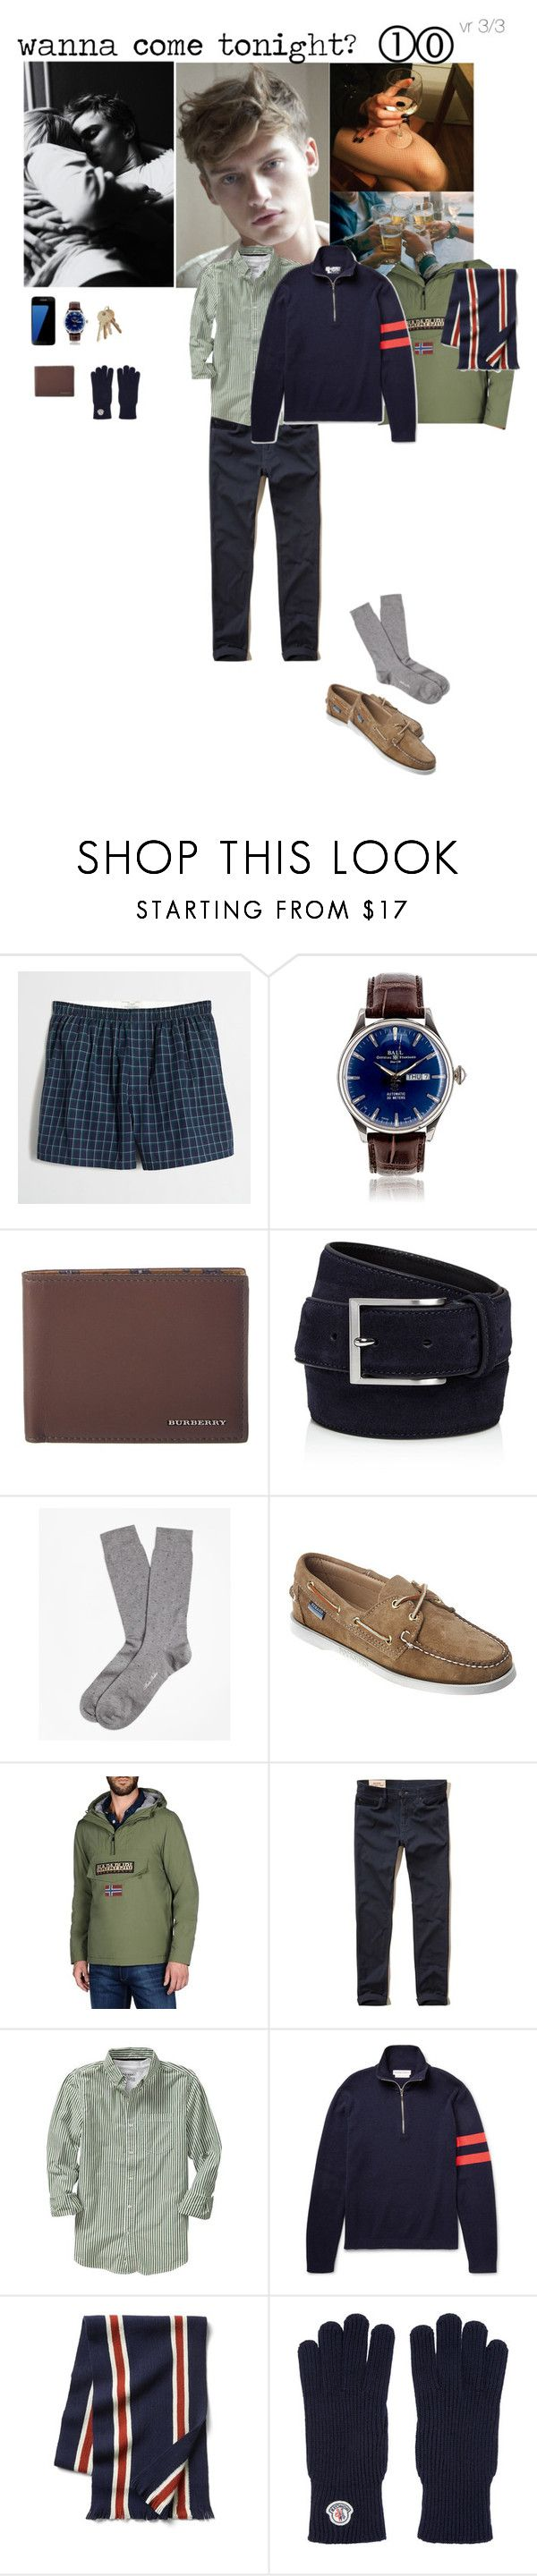 """wanna come tonight?"" by adelaidesmitha ❤ liked on Polyvore featuring J.Crew, Samsung, Burberry, To Boot New York, Brooks Brothers, Sebago, Napapijri, Hollister Co., Old Navy and Michael Bastian"